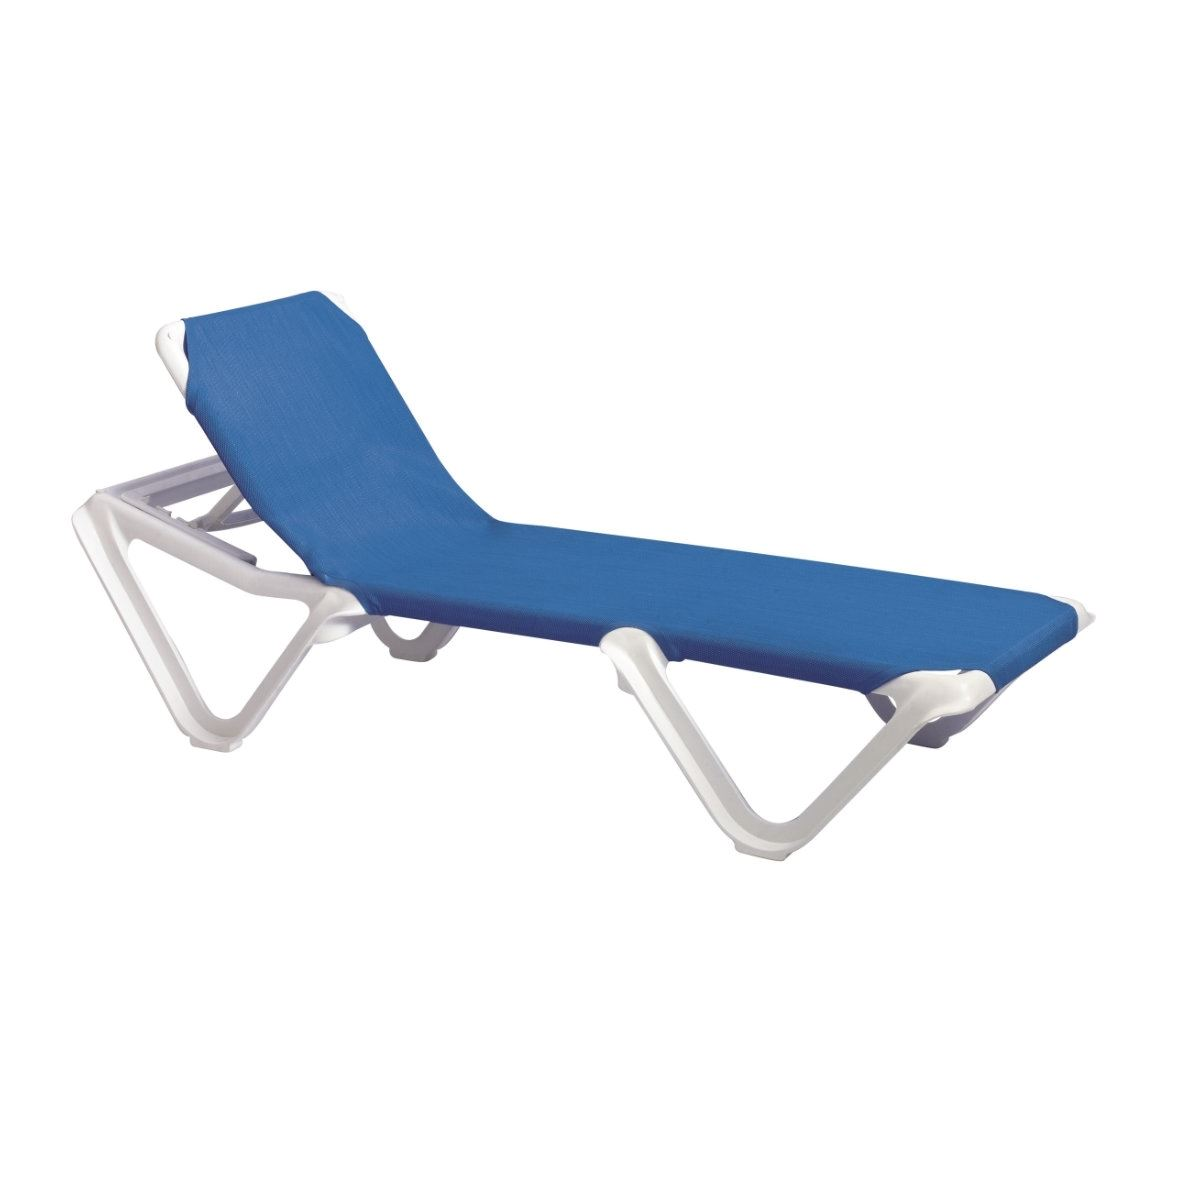 Plastic Chaise Lounge Chairs Cheap Chaise Lounge Frame Sling Plastic Resin Nautical Pool